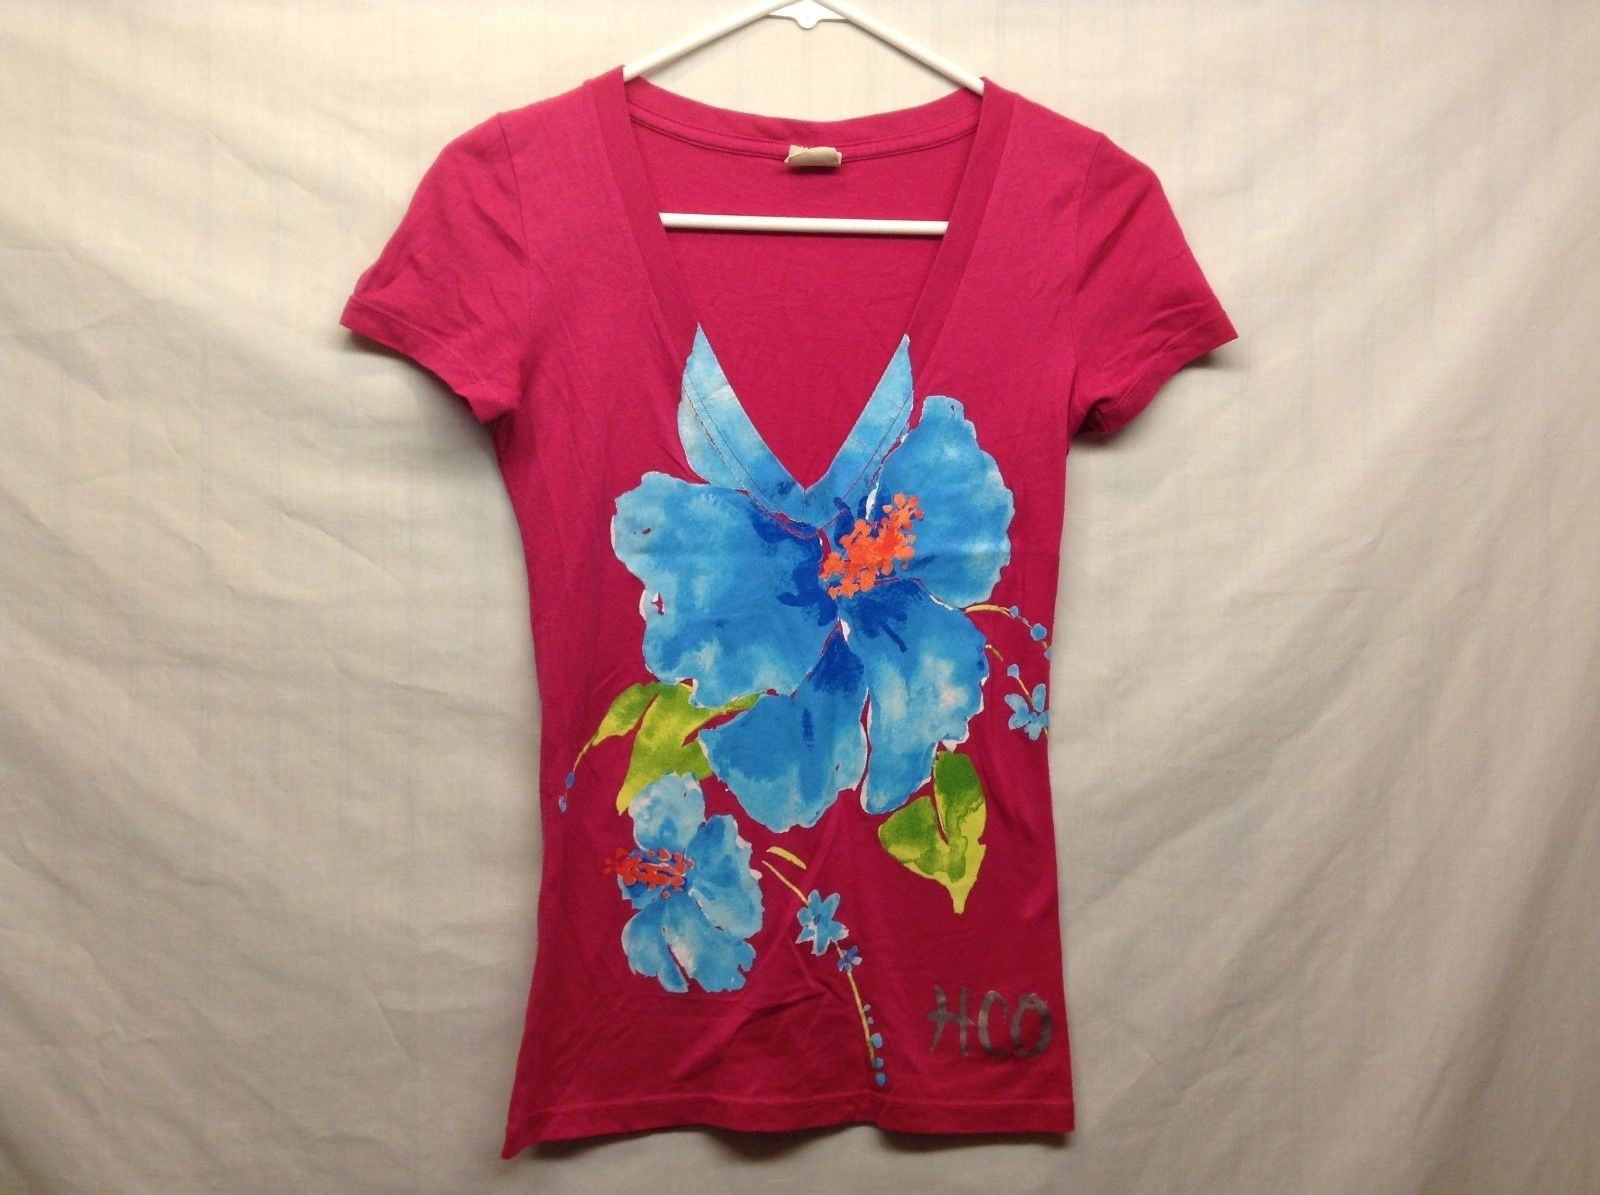 Hollister Short Sleeve Low V Neck Pink Floral Print Shirt Sz XS